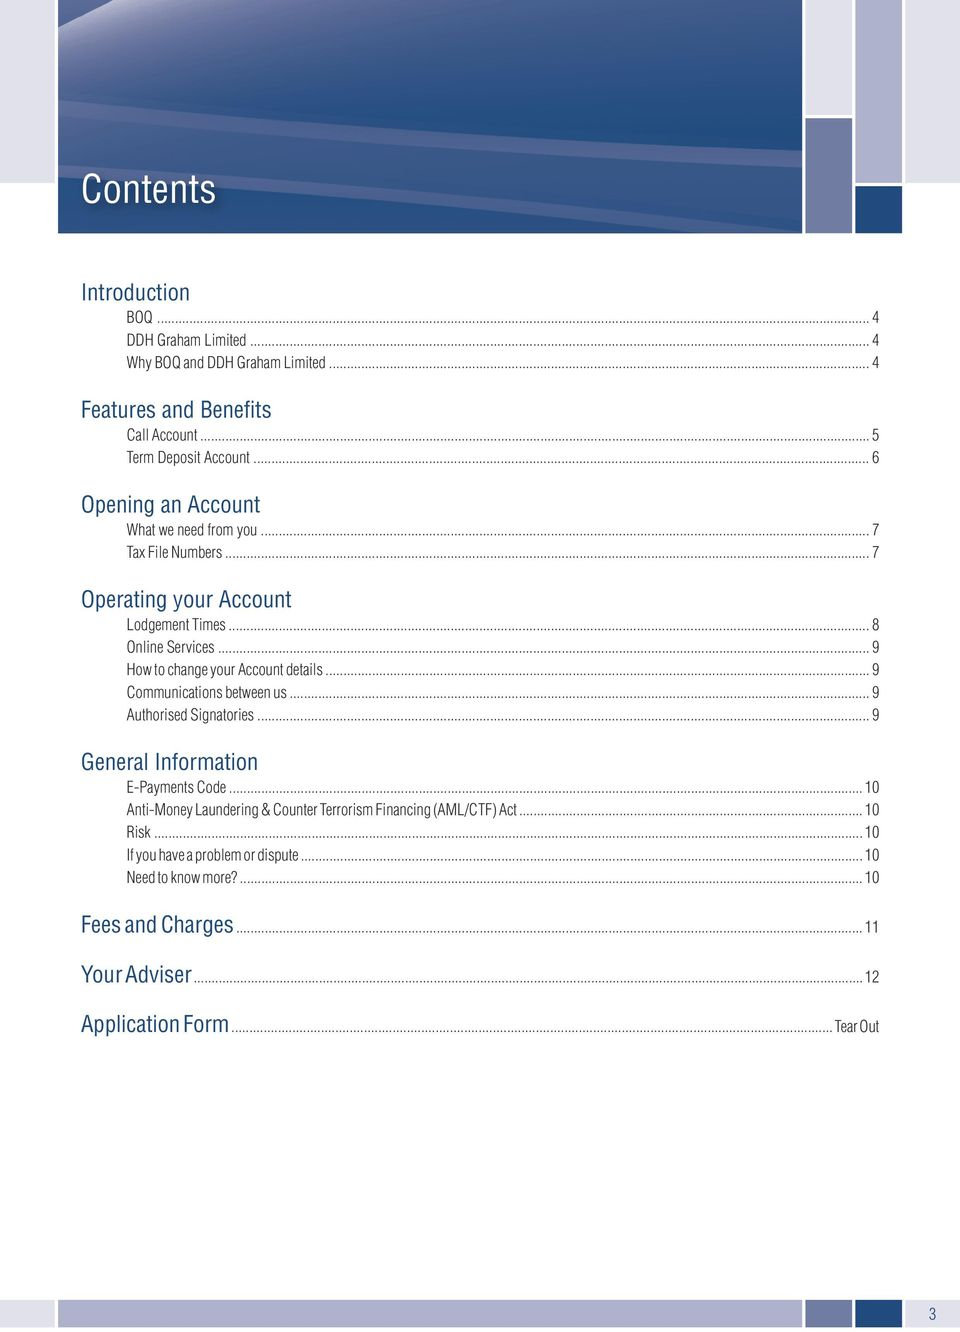 .. 9 How to change your Account details... 9 Communications between us... 9 Authorised Signatories... 9 General Information E-Payments Code.